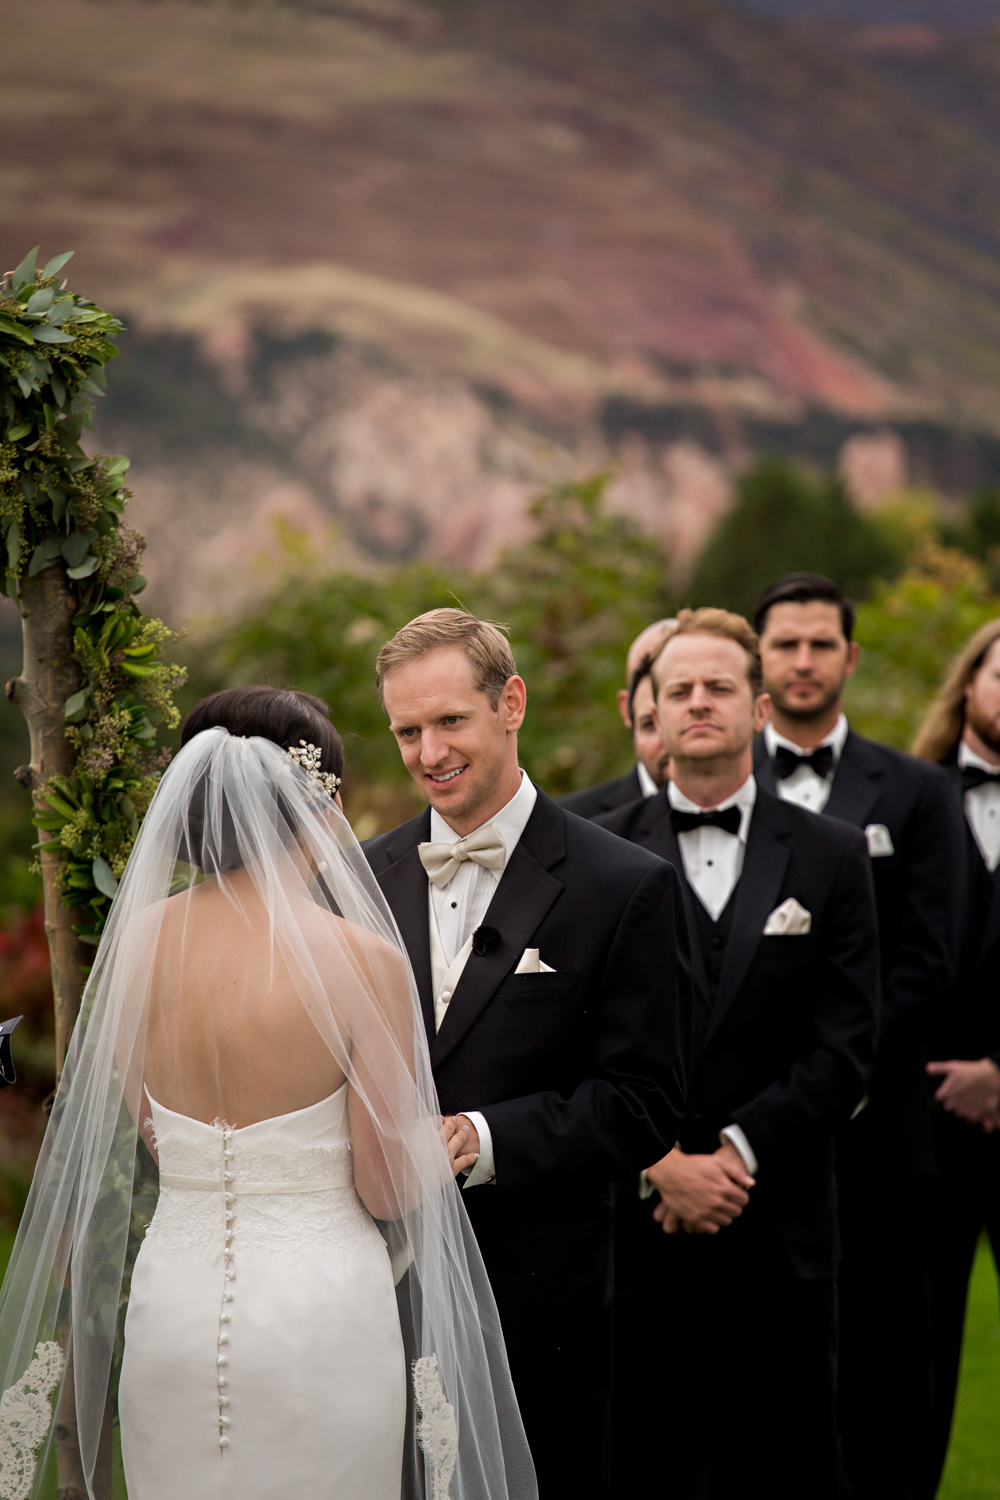 PaigeEden_Weddings_Broadmoor_043.jpg